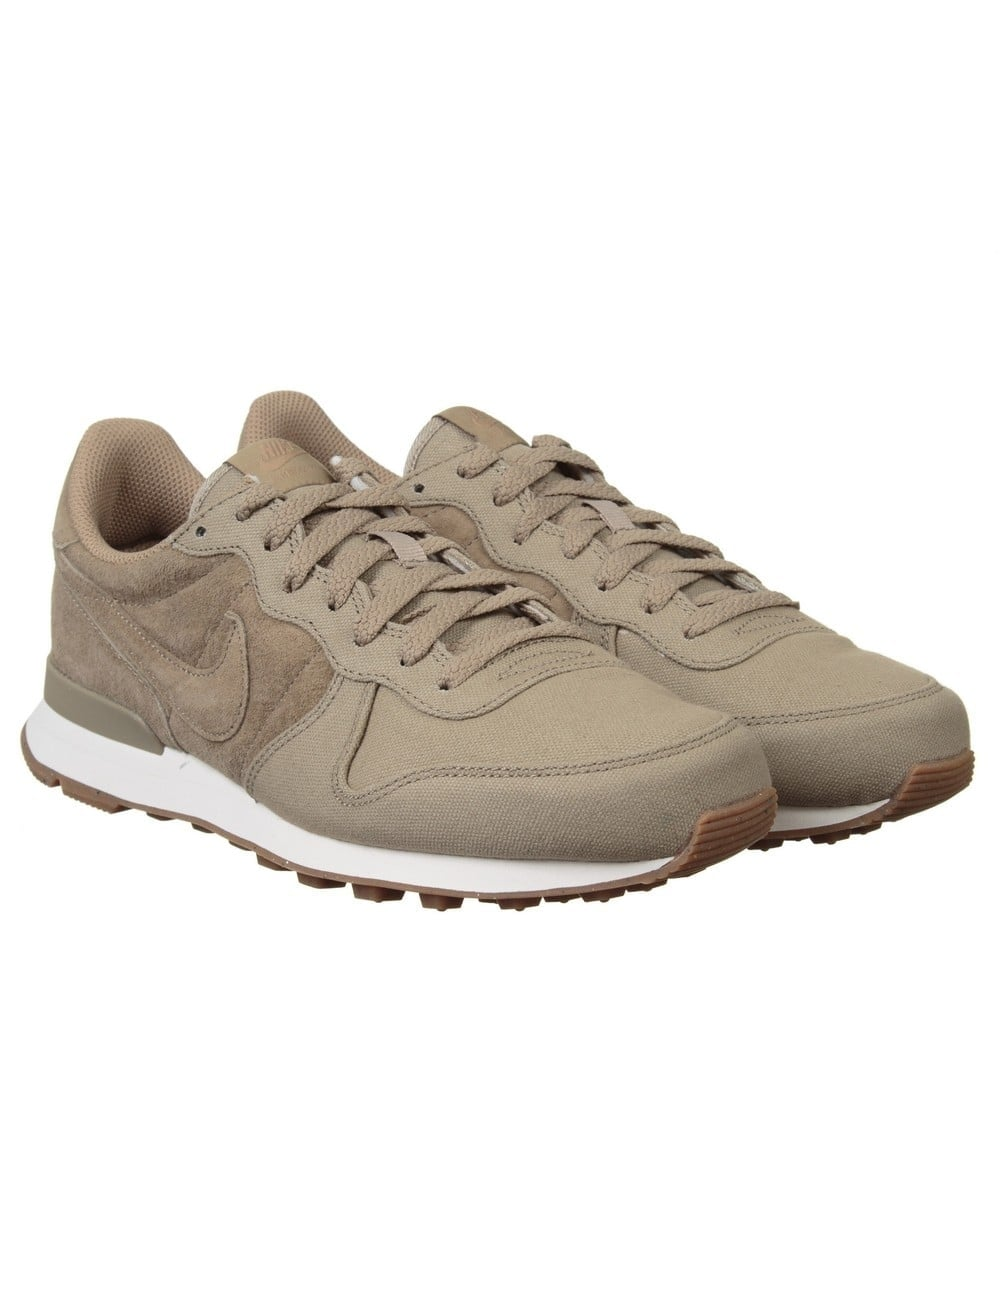 Internationalist PRM Shoes - Bamboo